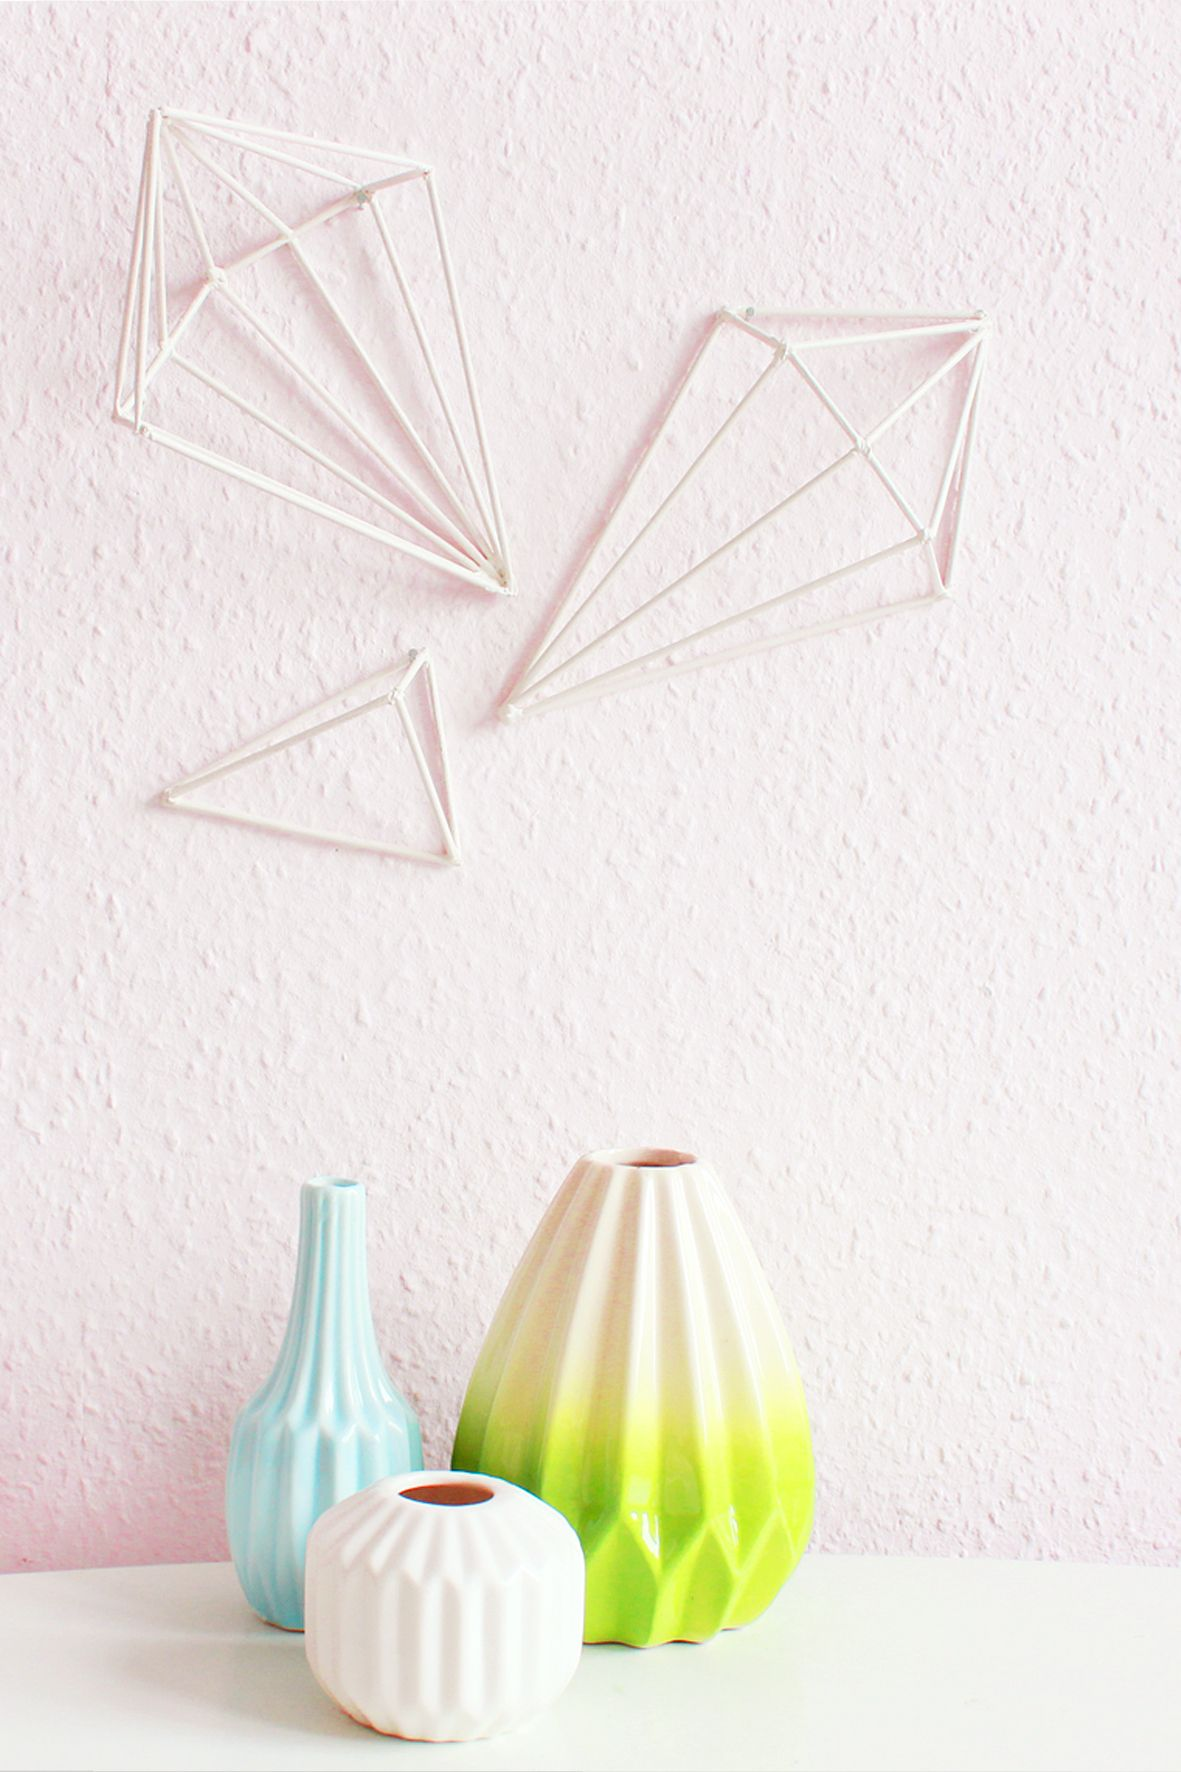 Wanddeko Geometrisch Diy Geometric Wall Art Wandobjekte Selber Machen Diy Projects